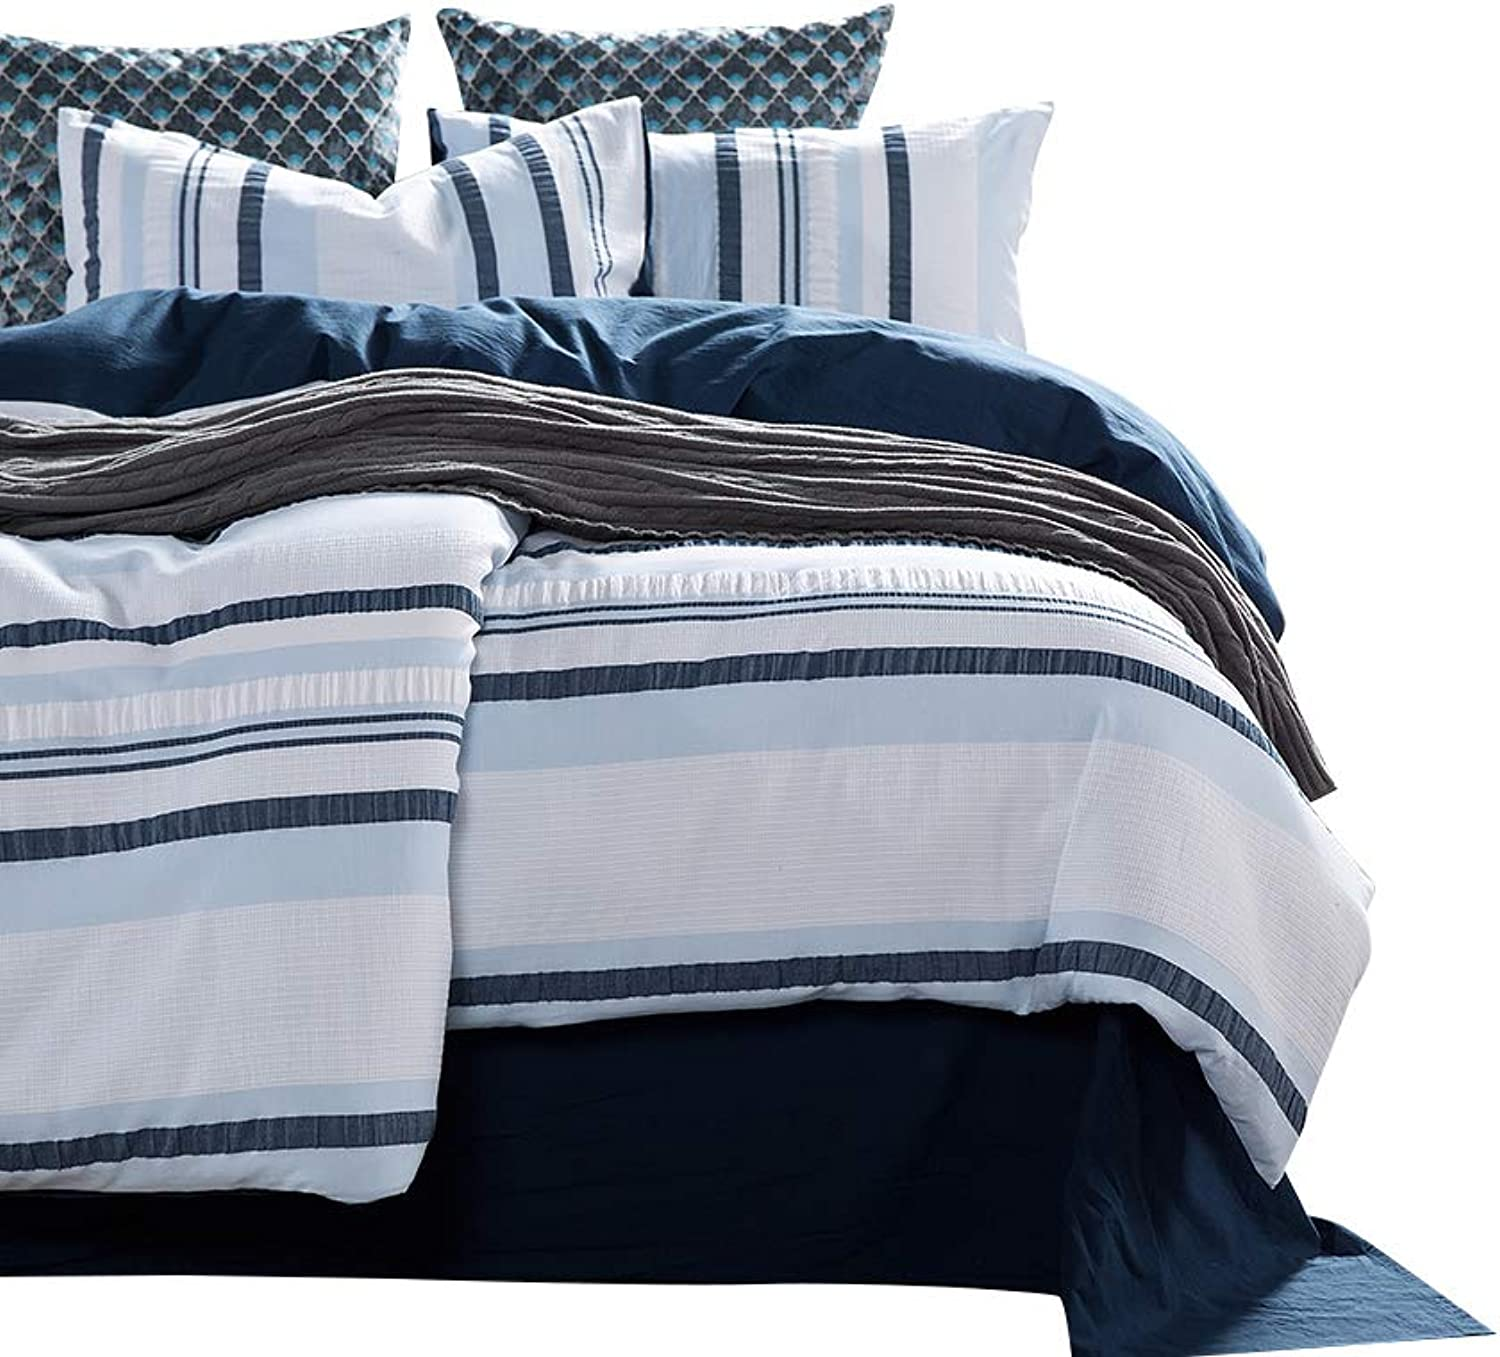 VM VOUGEMARKET 100% Cotton Woven Seersucker Stripe Duvet Cover Set Full Queen 3 Pieces bluee White Duvet Cover with 2 Pillowcases for Adults Men